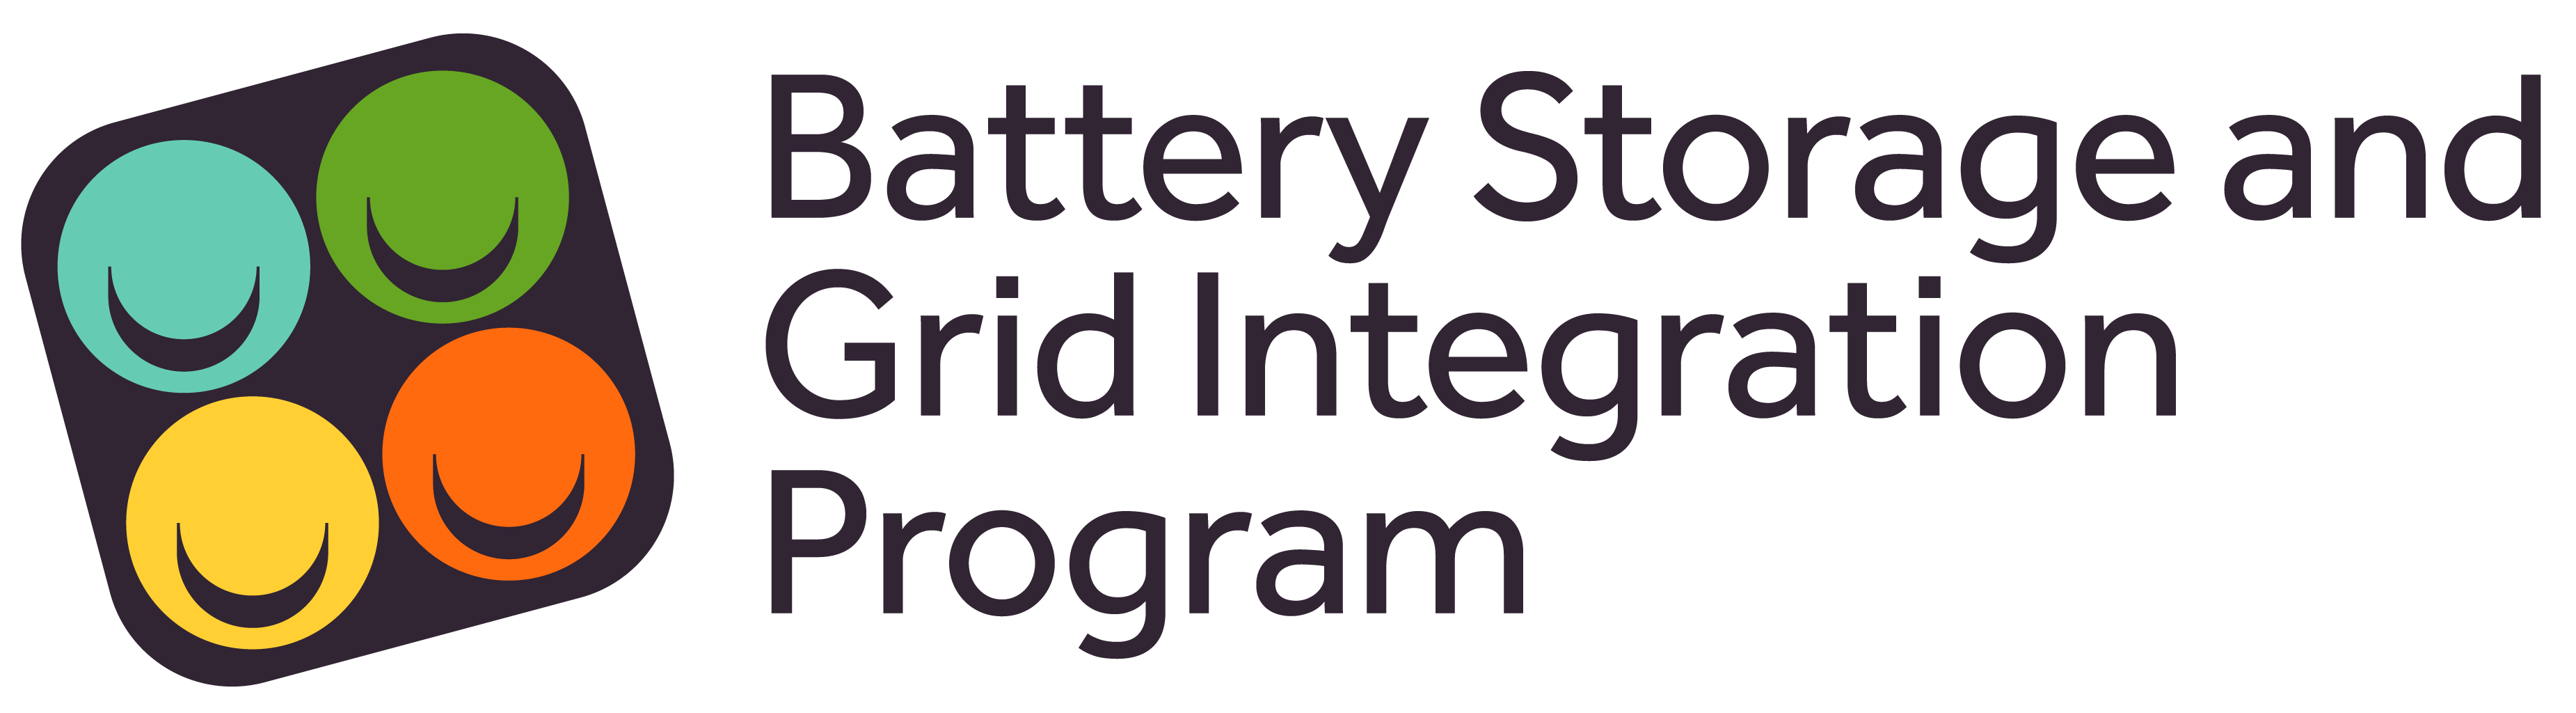 Battery Storage and Grid Integration Program